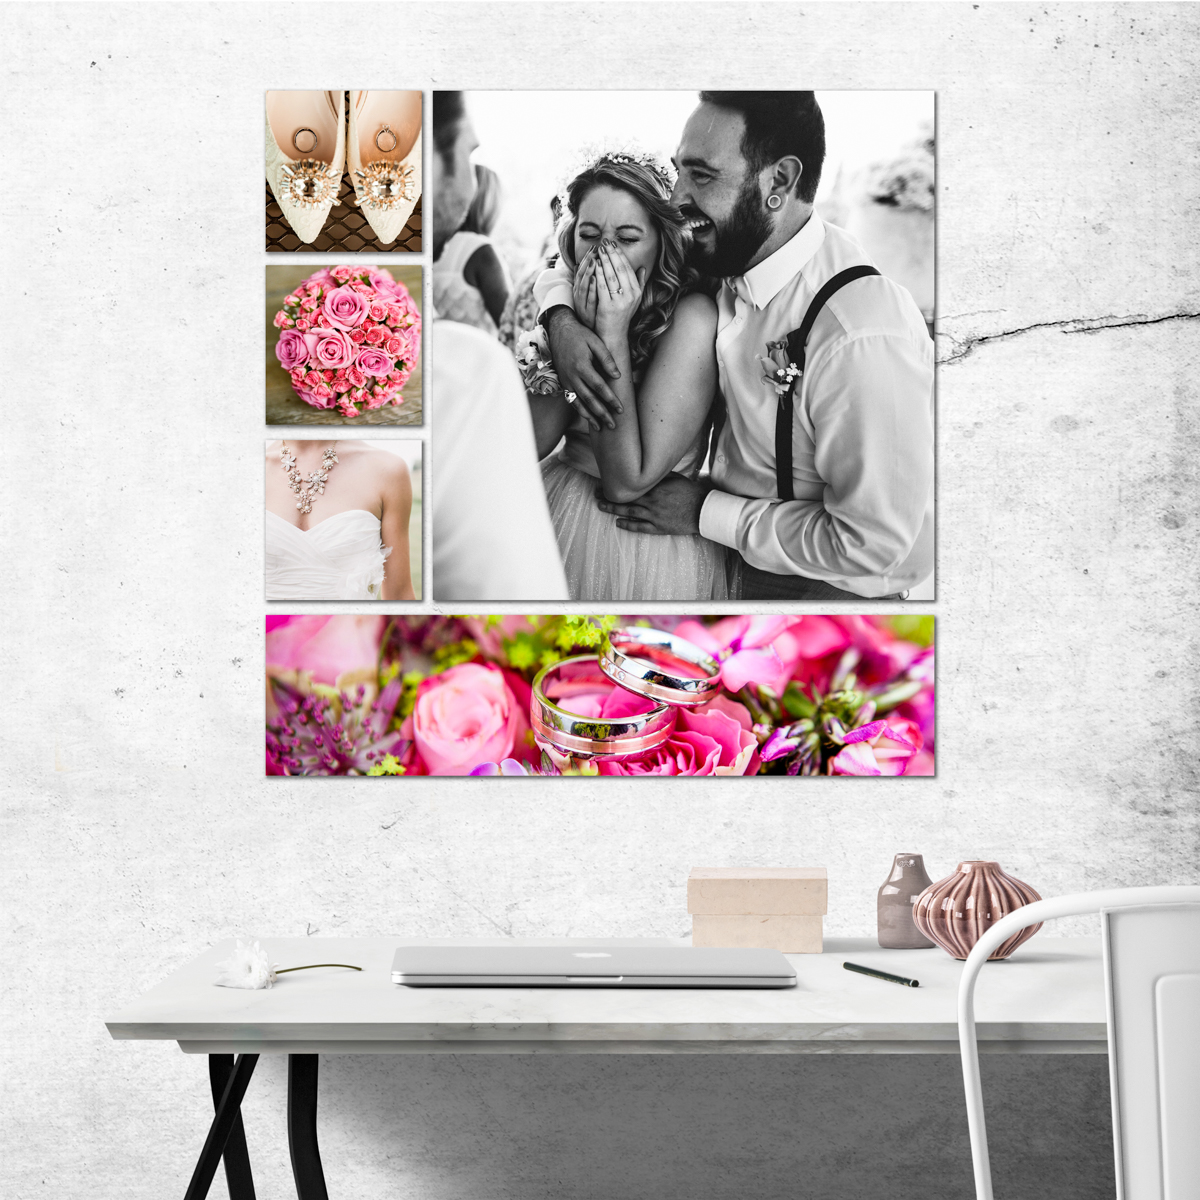 ArtisanHD Wall Art Gallery Clusters and Splits Wall Art Collage - great idea for custom photo gifts